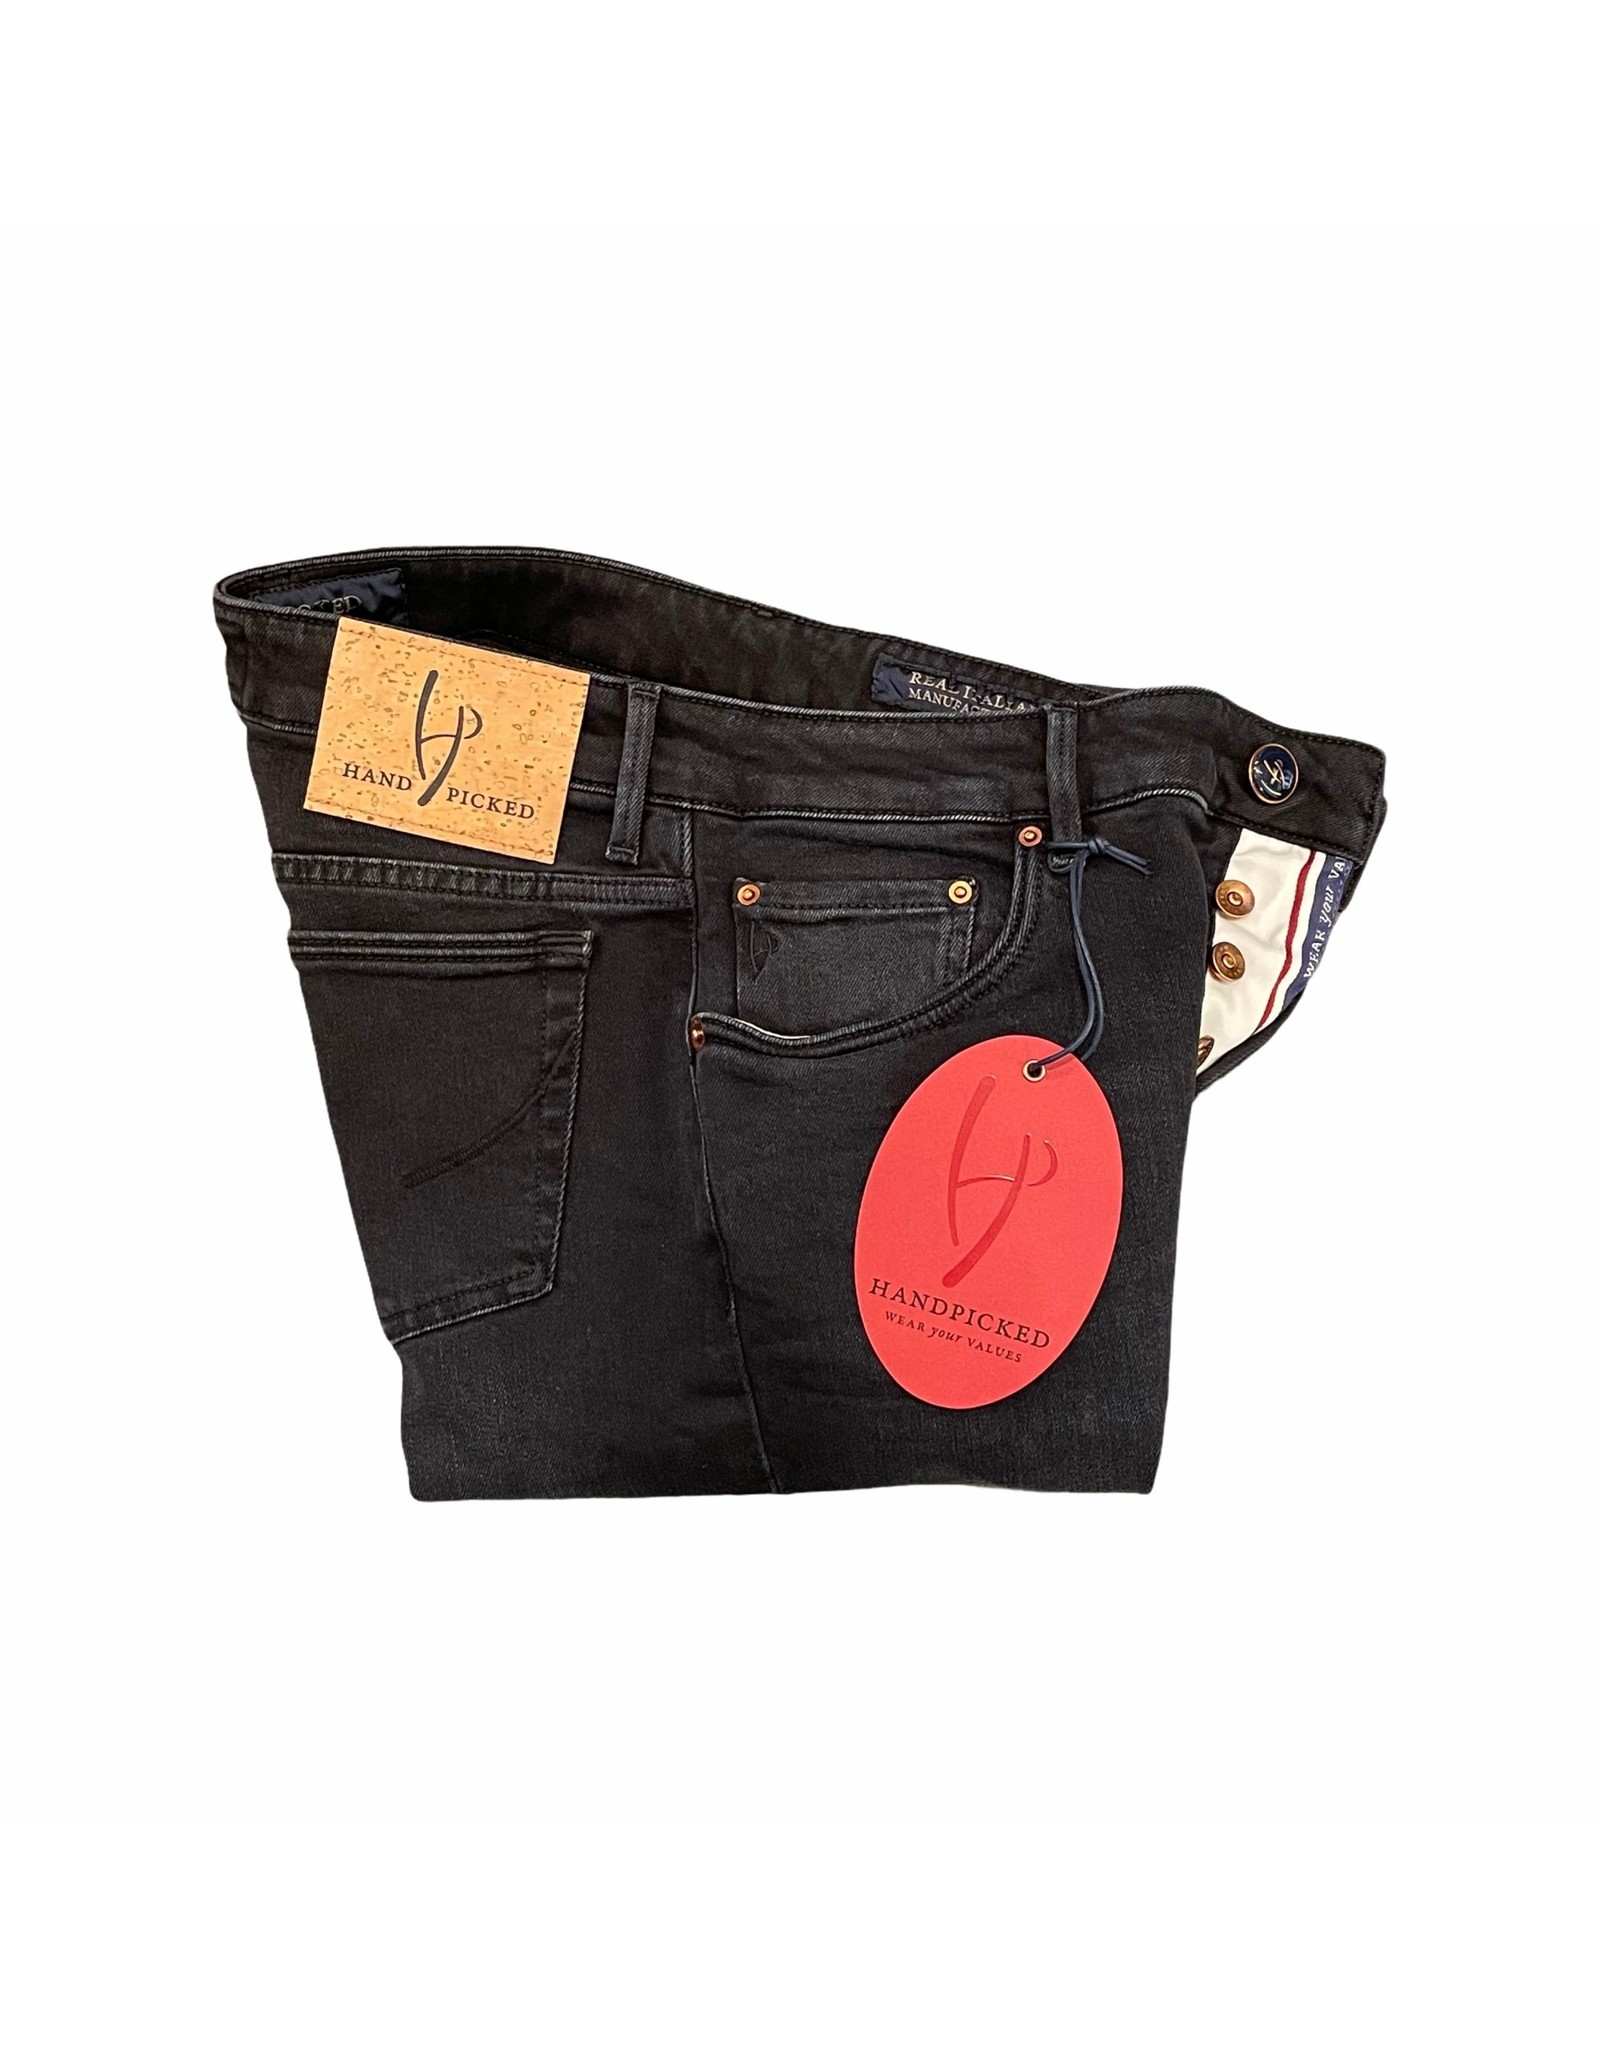 Hand Picked 21/1 Hand Picked  Jeans ORVIETO-ECO  01789 W2